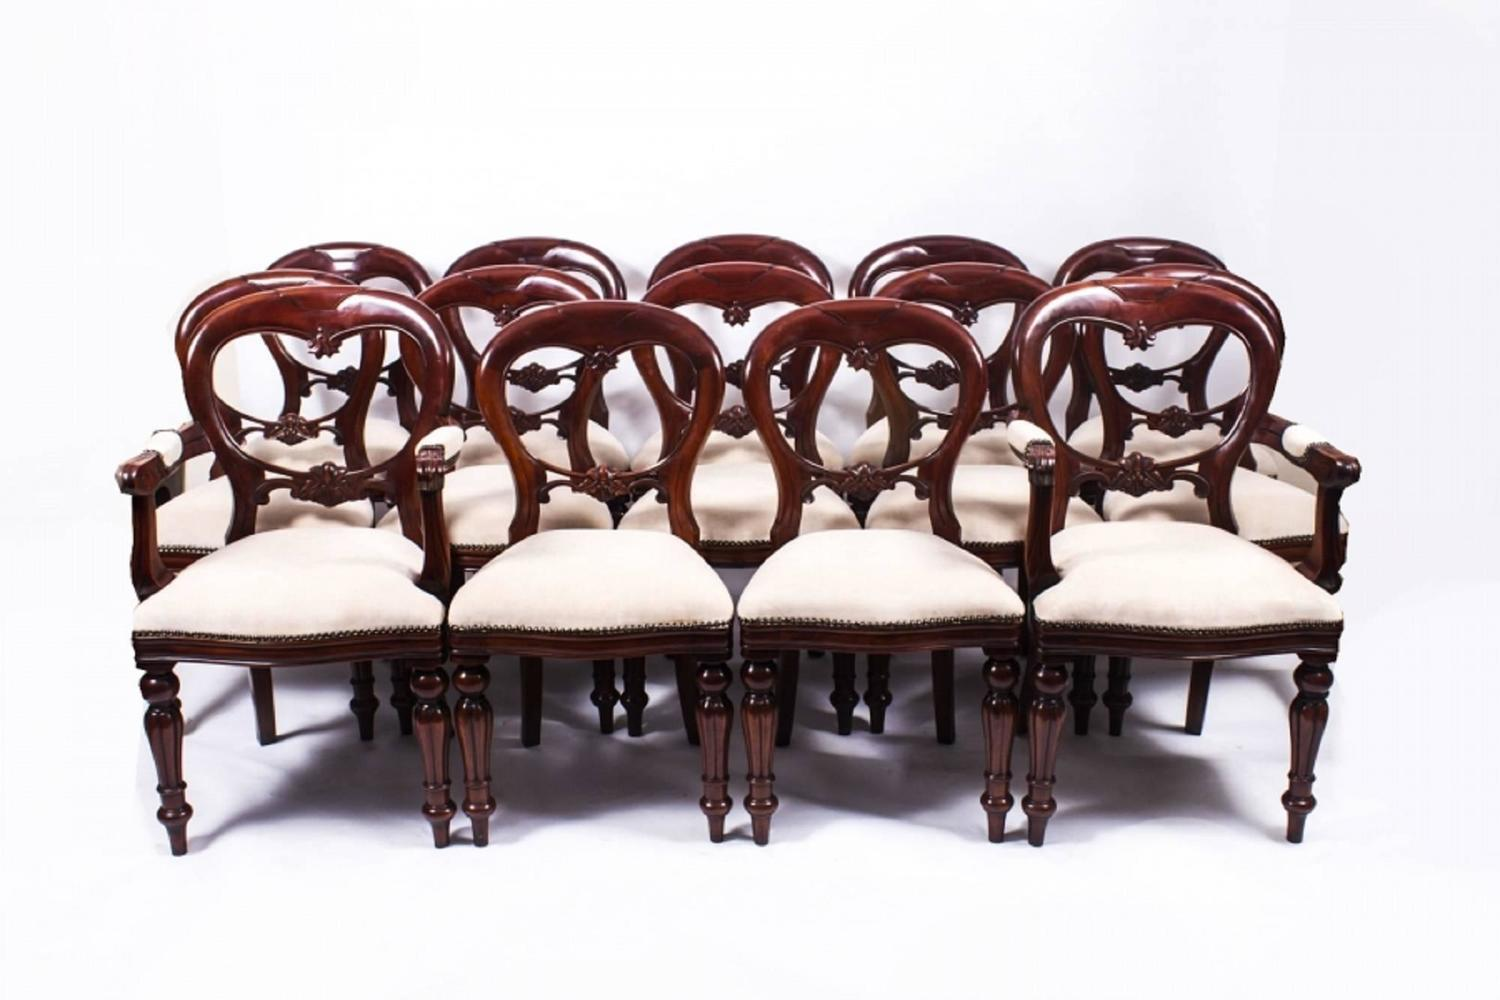 Antique Victorian Dining Table And 14 Chairs Circa 1850 For Sale At